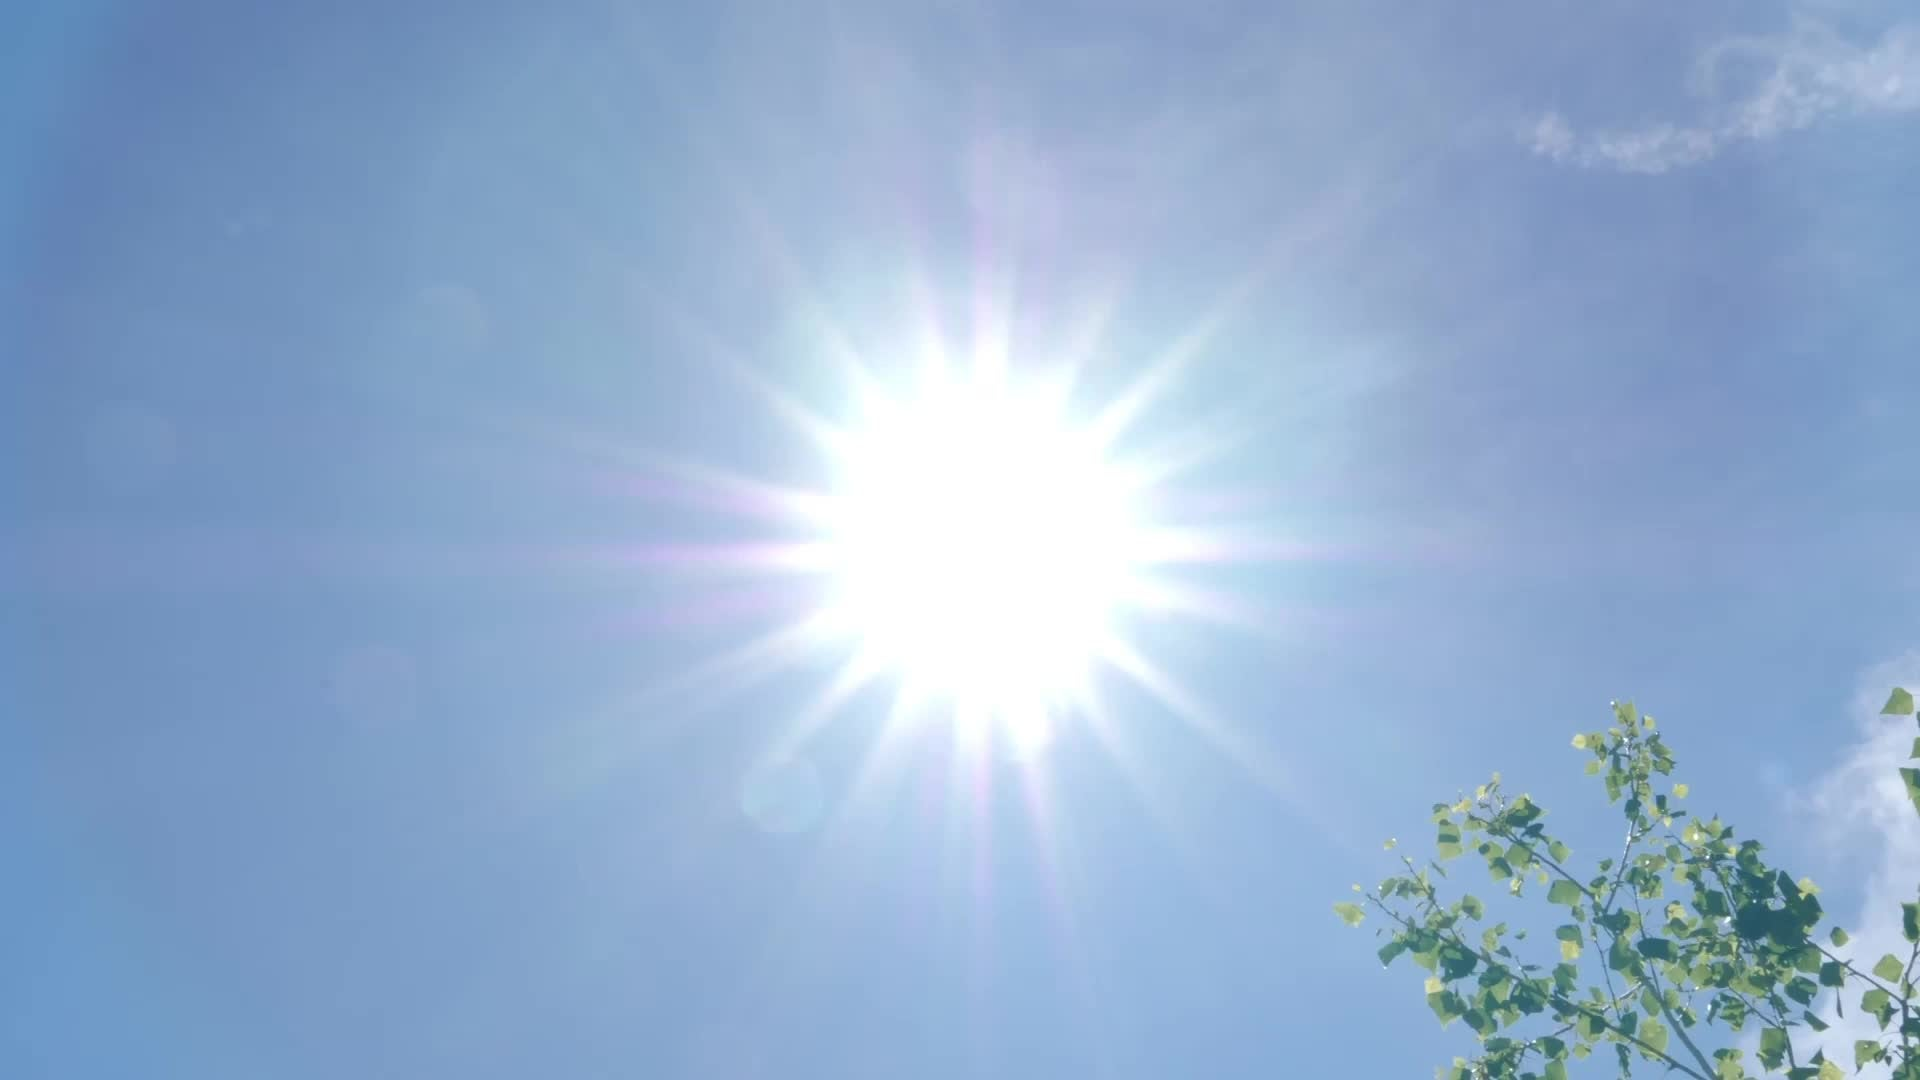 4 Things Extreme Heat Can Do to Your Body